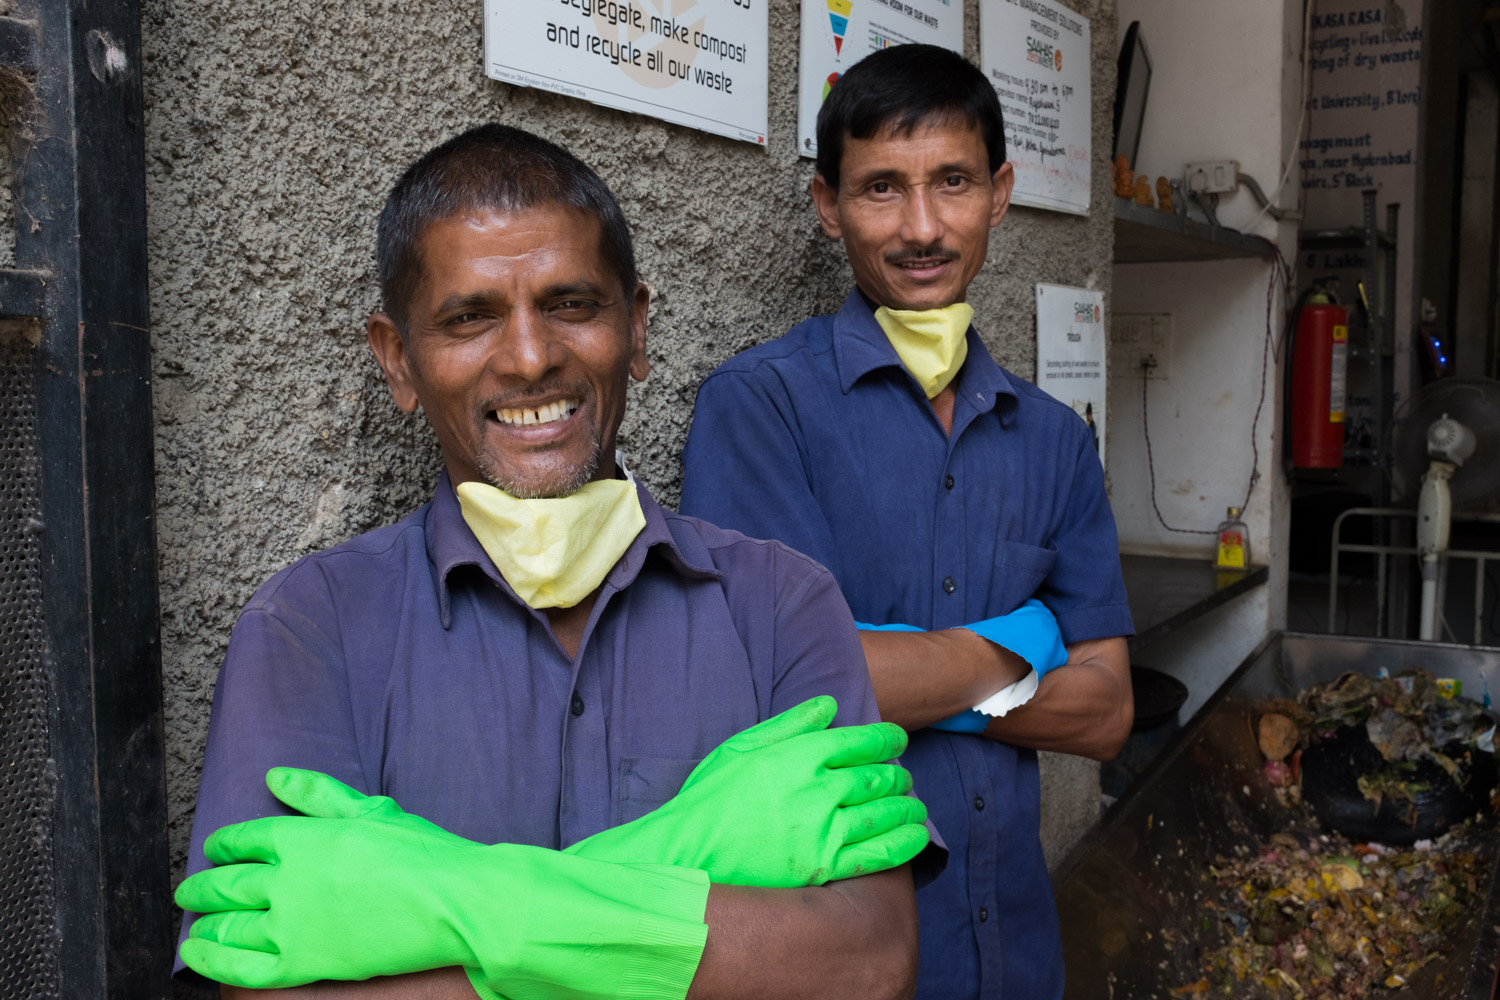 2 waste workers with protectcive masks and gloves